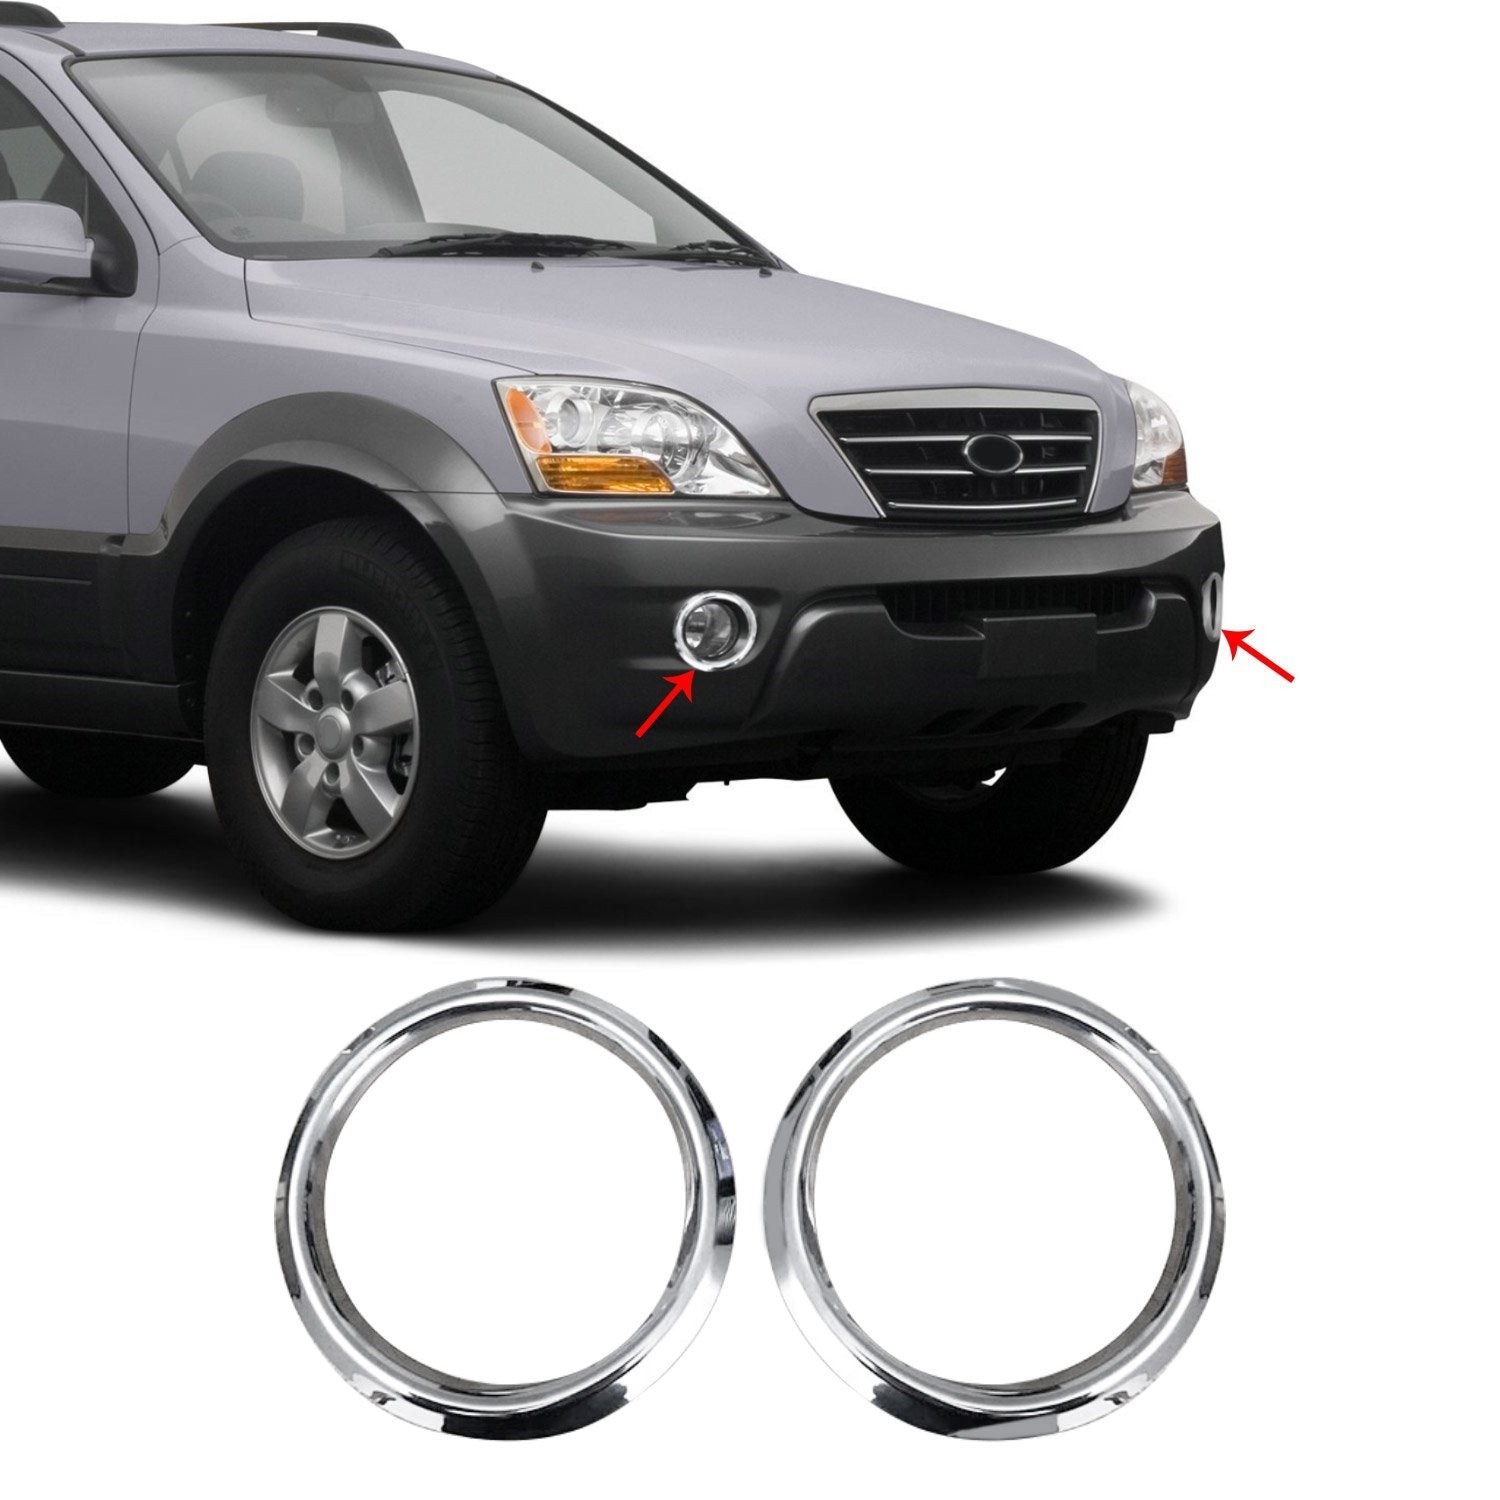 Chrome Fog Light Surround Lamp Trim Steel for Kia Sorento 2003-2010